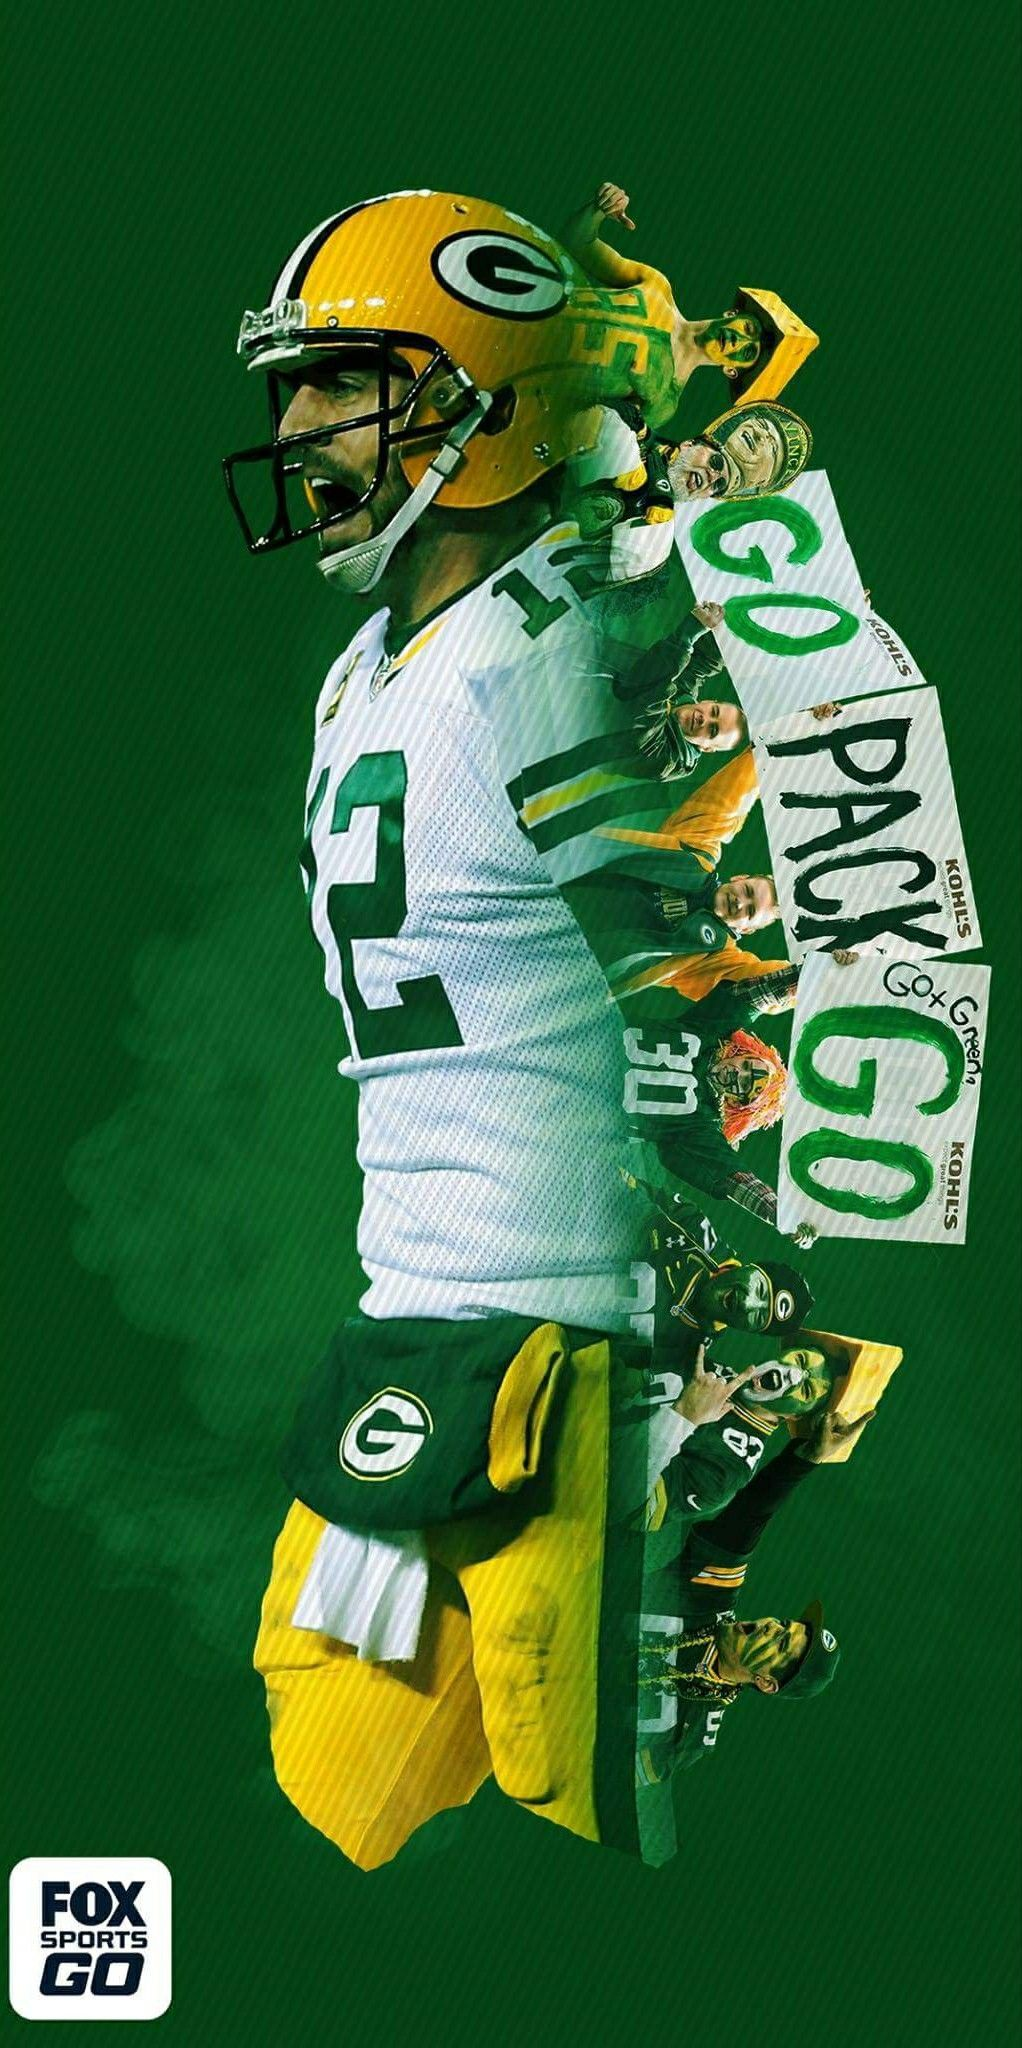 Football Wallpaper Football Green Bay Http Wallpapersalbum Com Football Wallpaper Foo In 2020 Green Bay Packers Wallpaper Green Bay Packers Green Bay Packers Jerseys